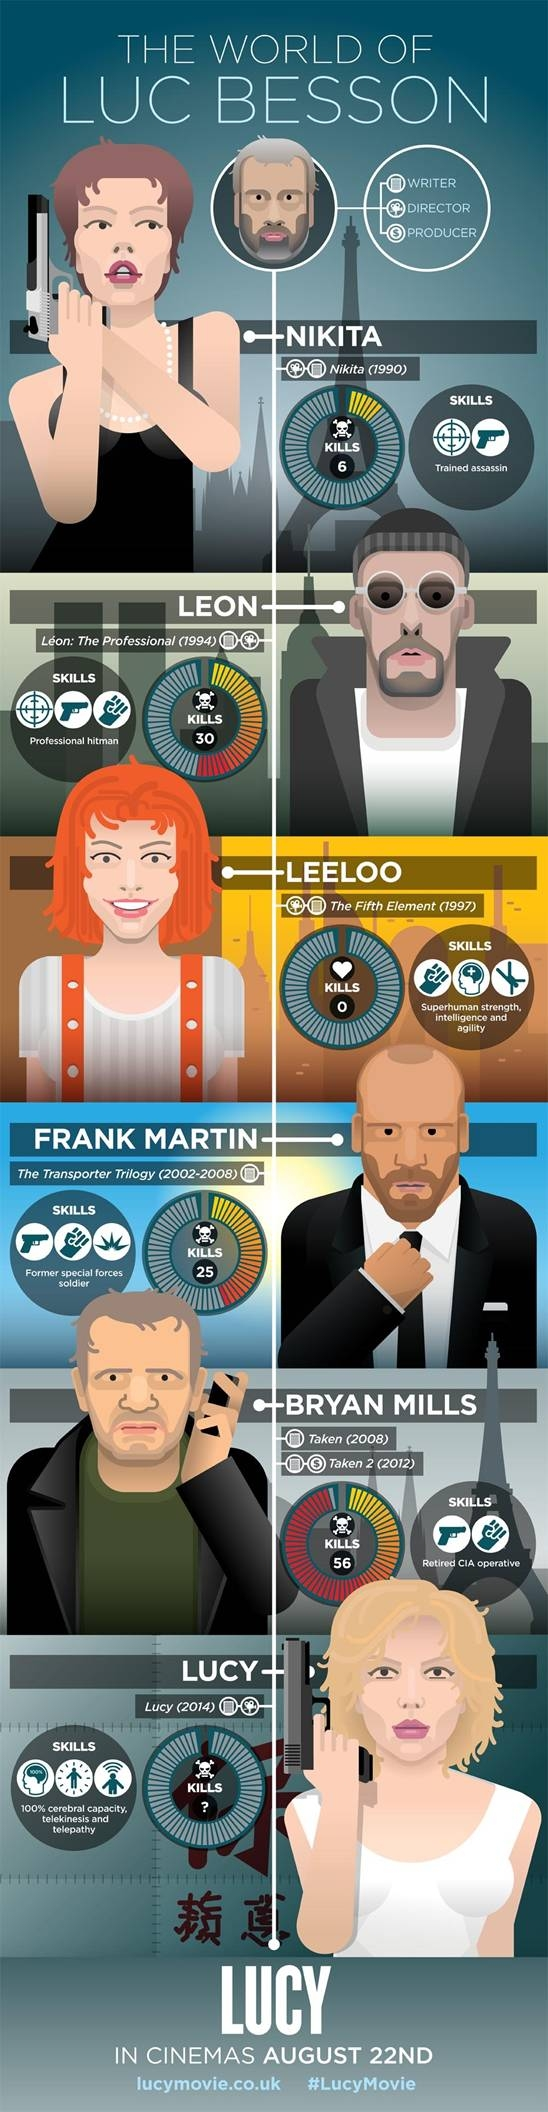 Lucy infographic Luc Besson characters Christian Tate